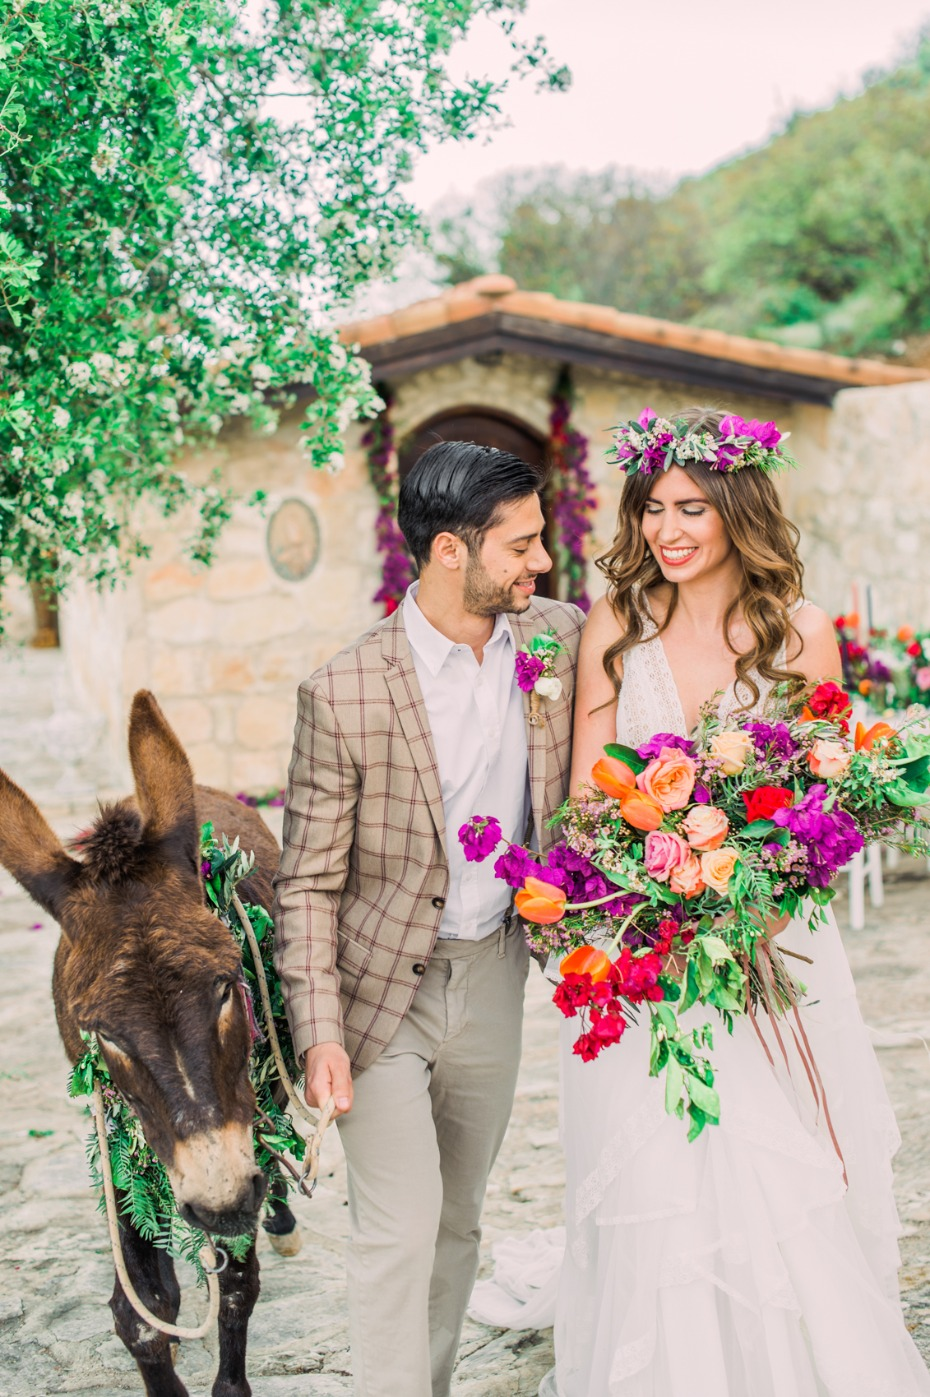 Colorful boho wedding with a donkey